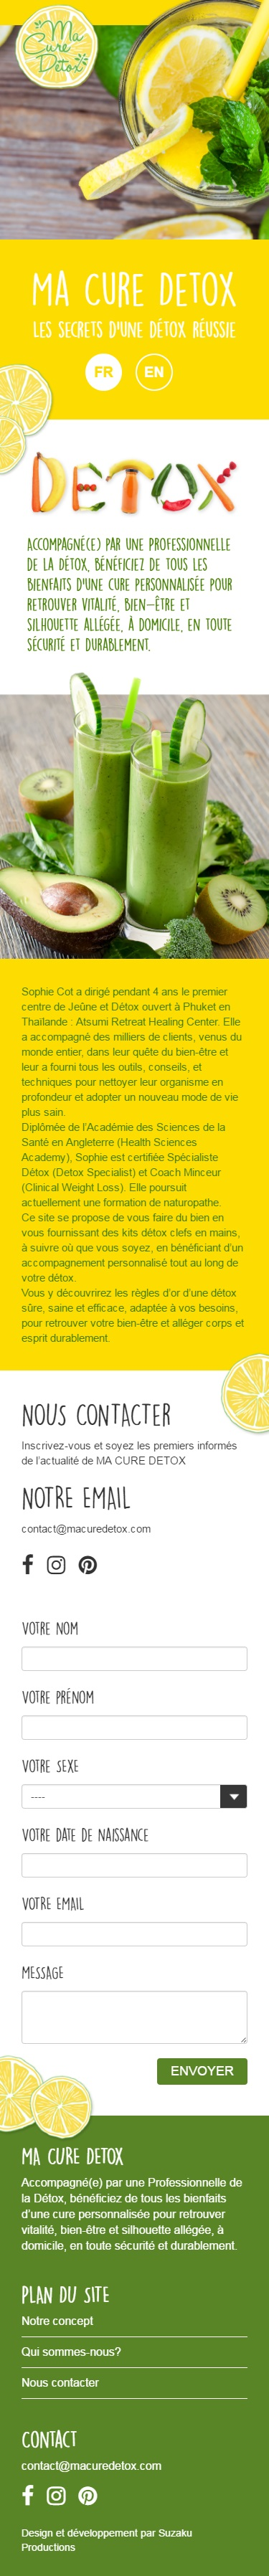 Macure Detox mobile view webdesign by Suzaku